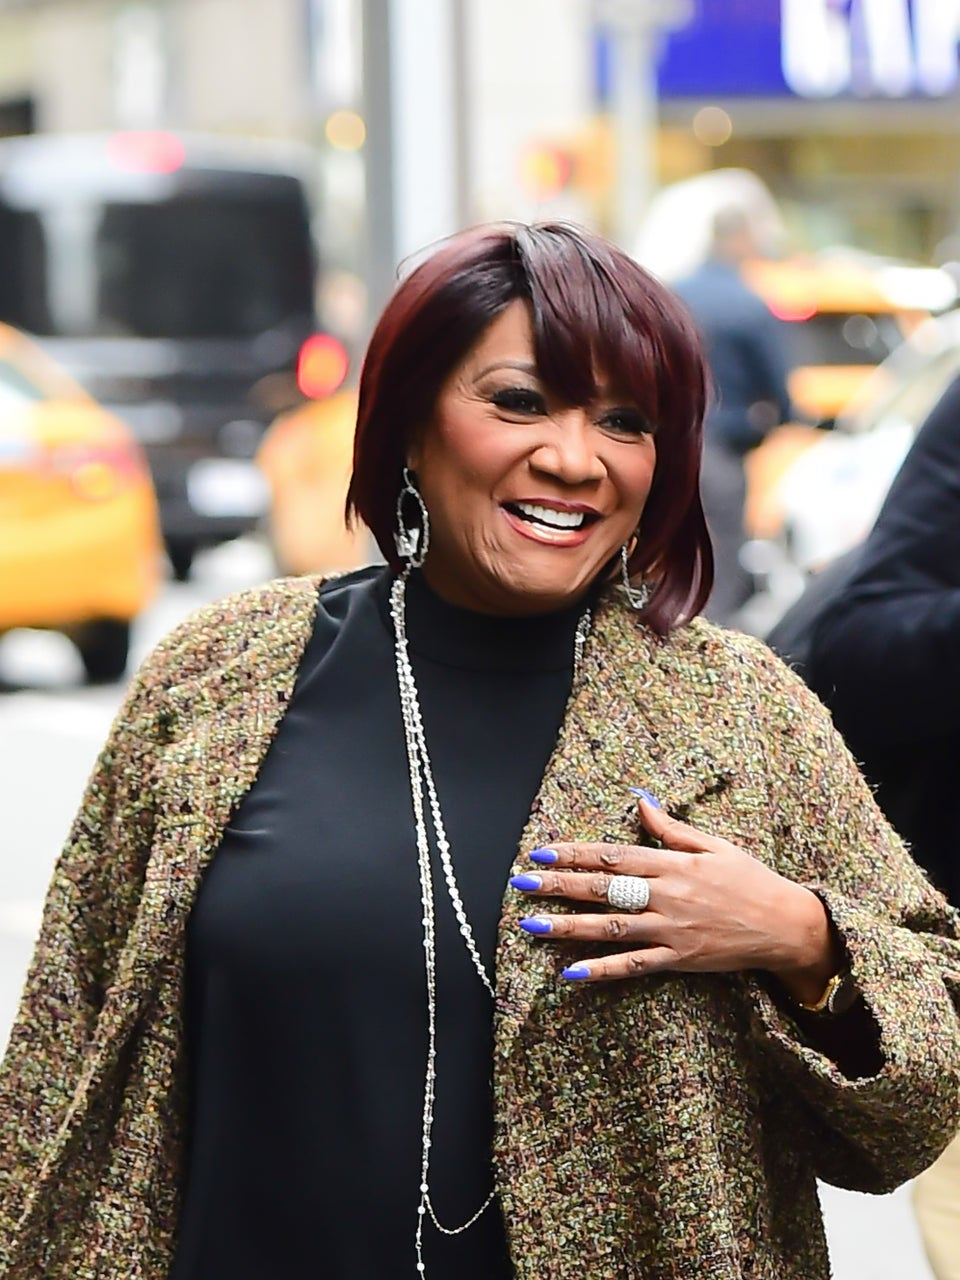 Patti LaBelle Is A National Treasure And Side-Eye Queen